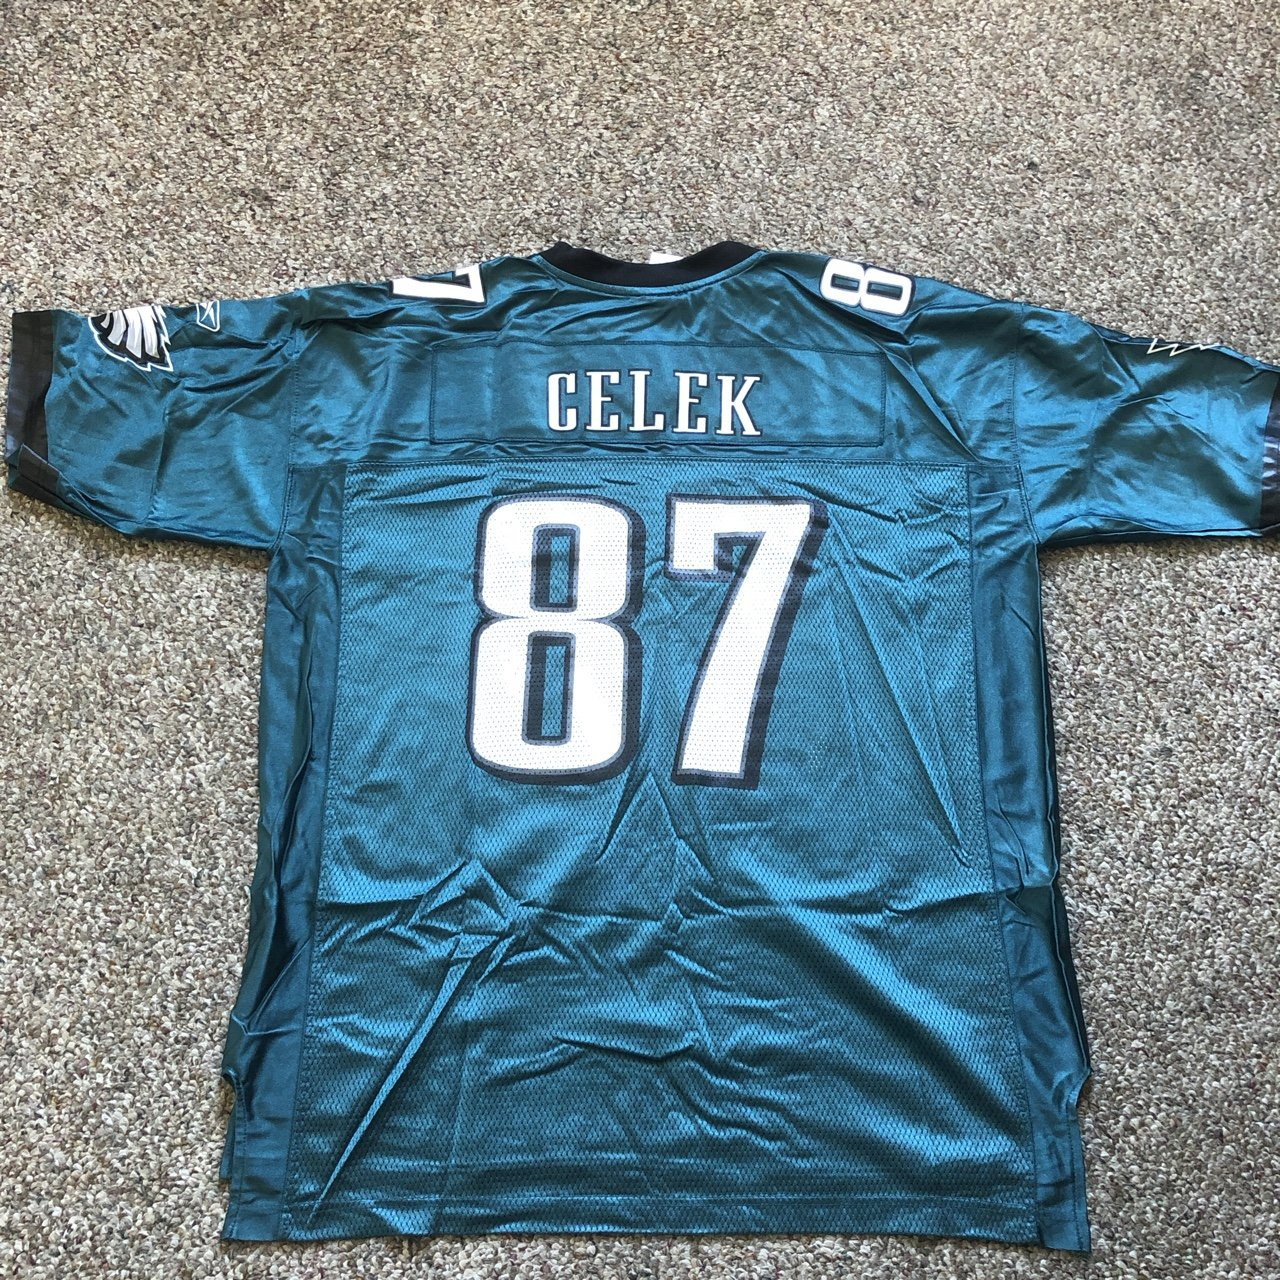 Philadelphia Eagles Brent Celek Jersey. Worn and washed no - Depop 1515a824e